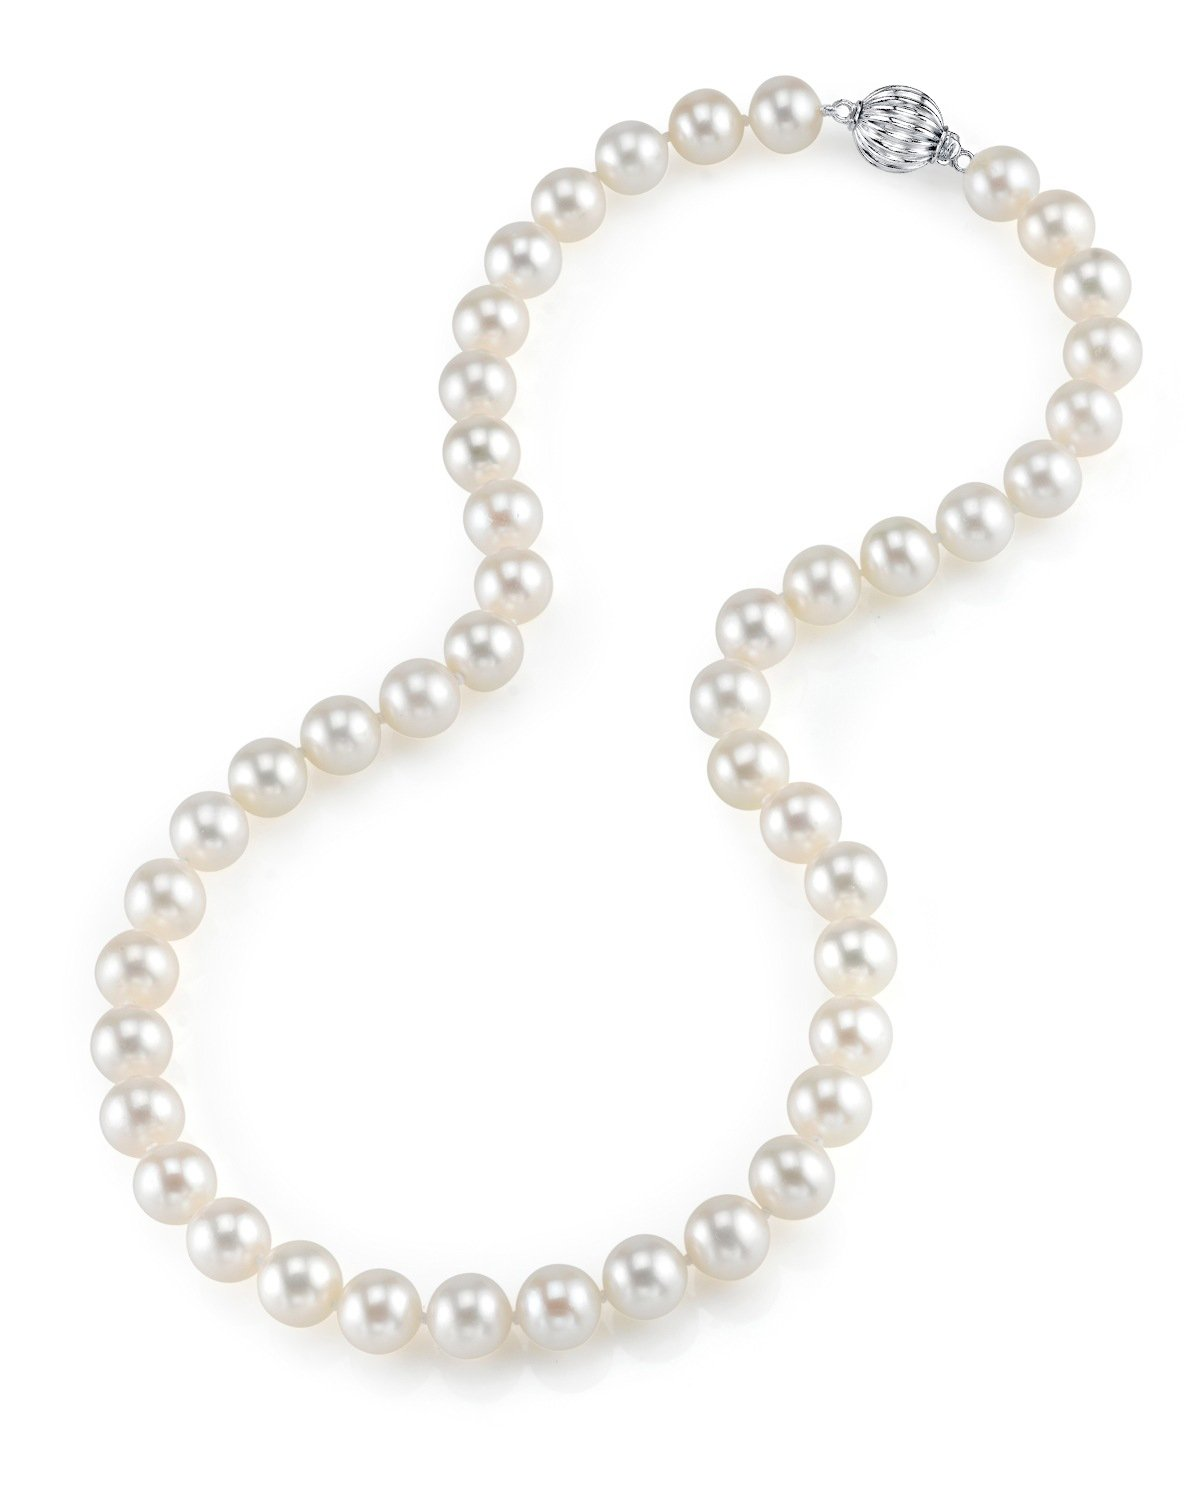 THE PEARL SOURCE 14K Gold 8-9mm AAAA Quality White Freshwater Cultured Pearl Necklace for Women in 18'' Princess Length